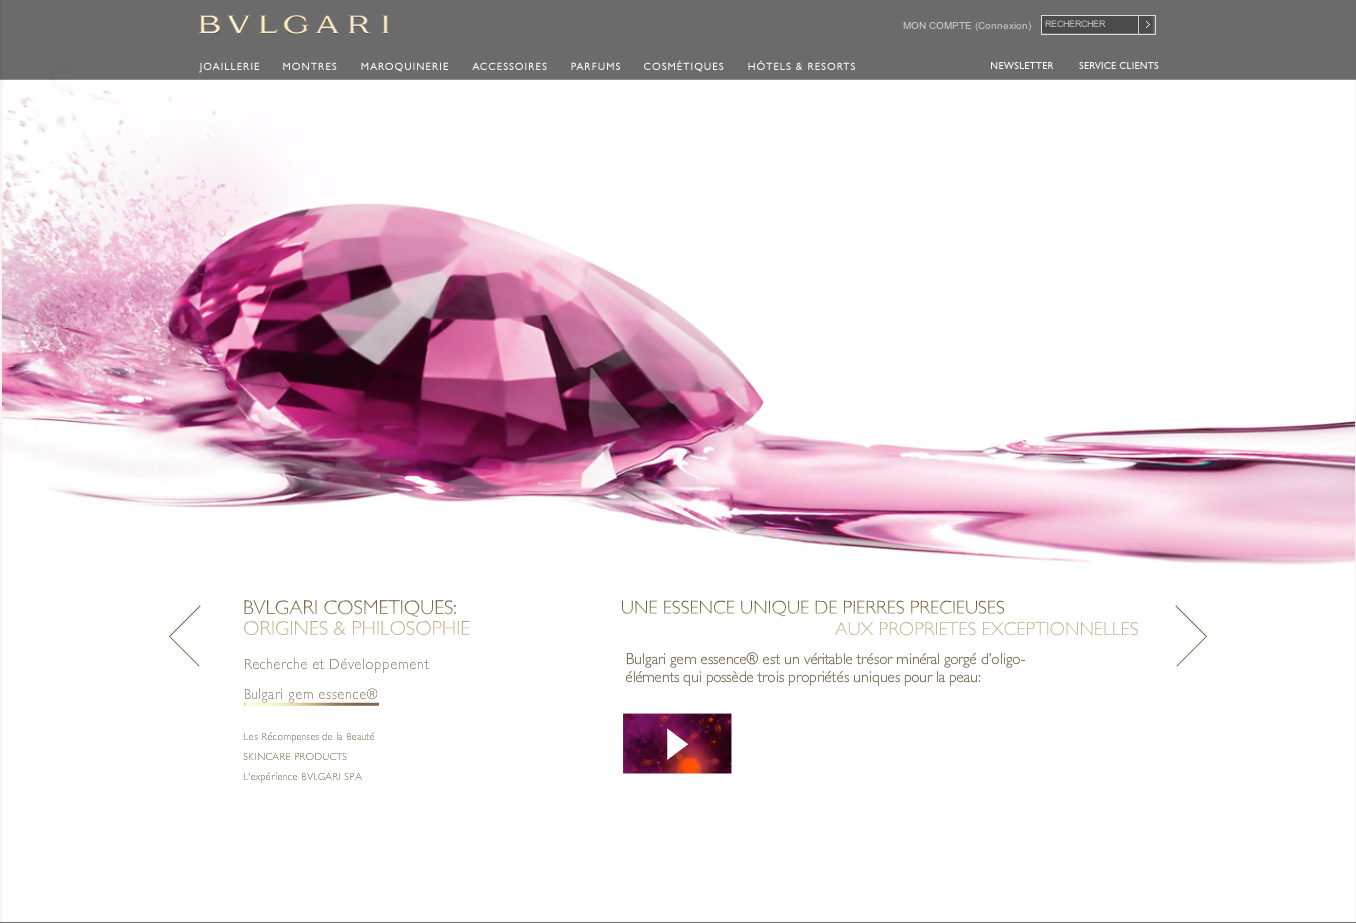 Bulgari Ligne Precieuse website